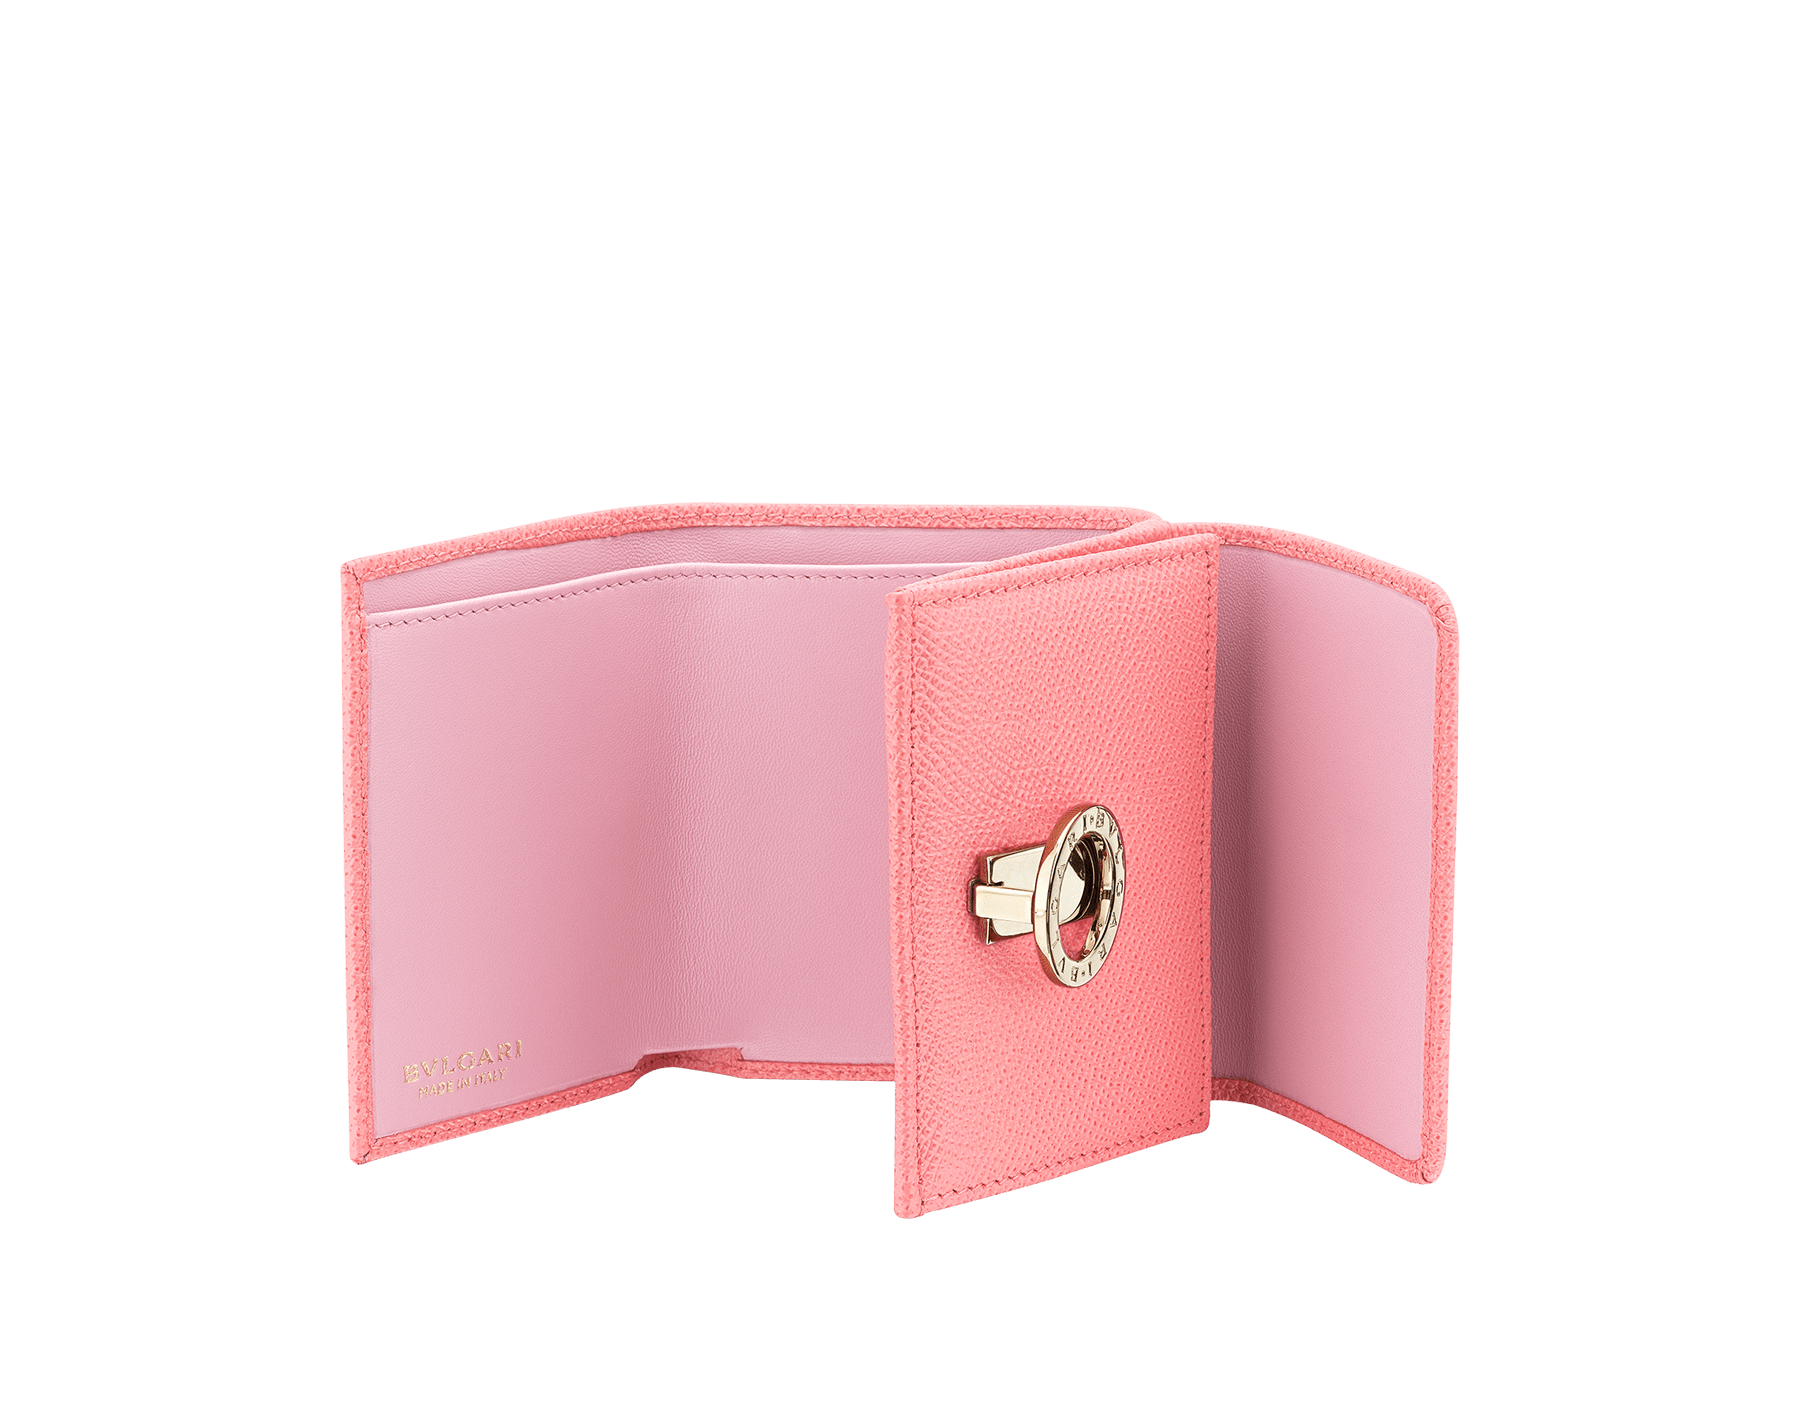 BVLGARI BVLGARI compact wallet in silky coral bright grain calf leather and flamingo quartz nappa leather. Iconic logo clip closure in light gold plated brass on the flap and press stud closure on the body. 289066 image 2